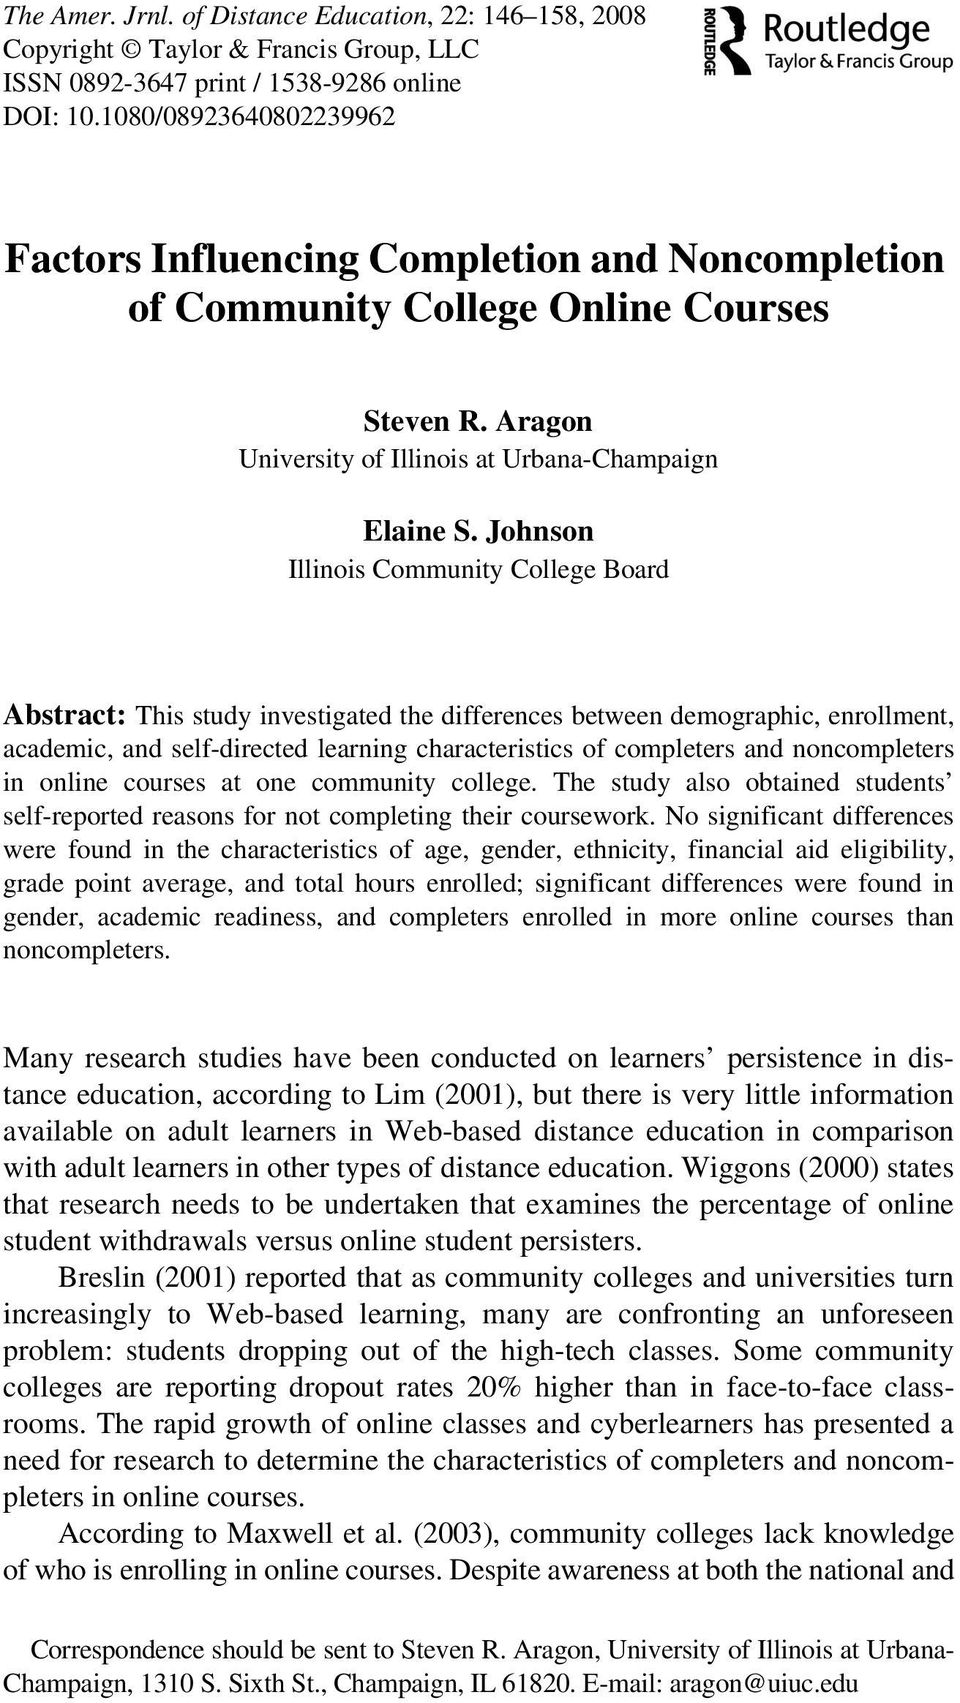 1 20 Factors Influencing Completion and Noncompletion of Community College Online Courses COMMUNITY ARAGON AND COLLEGE JOHNSONONLINE COURSES Steven R.